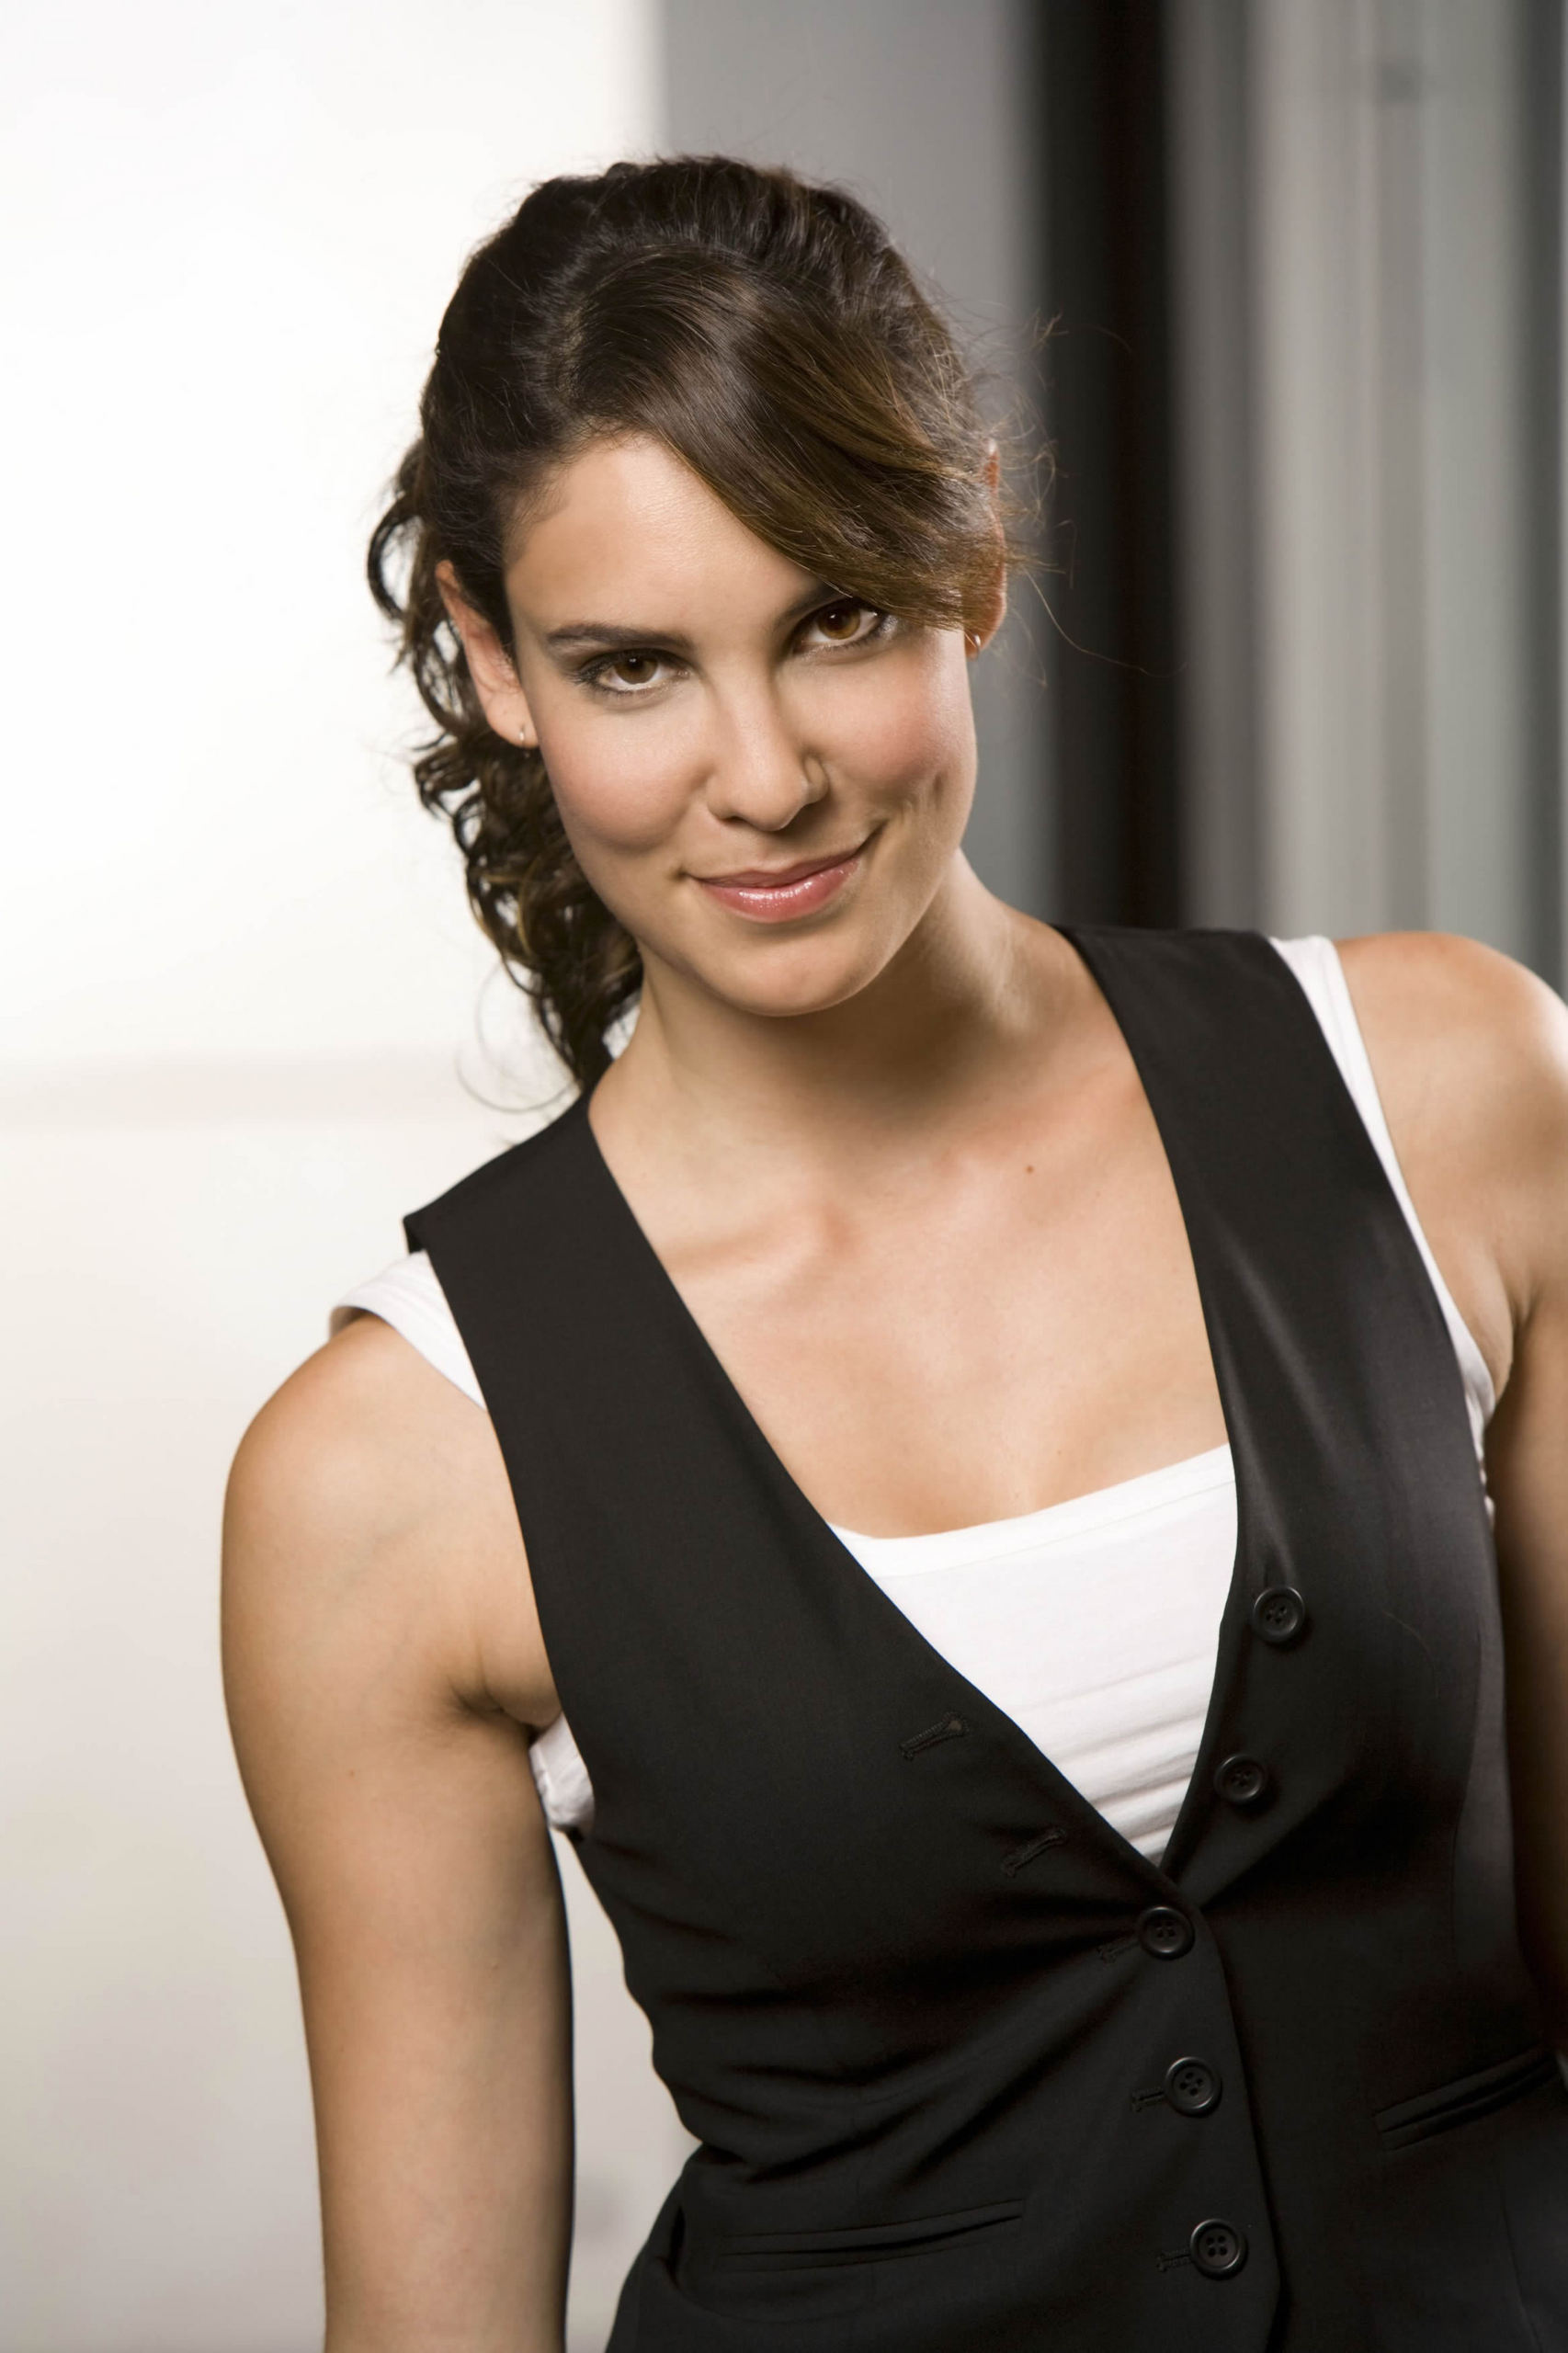 Daniela Ruah Daniela @ NCIS Los Angeles [More Promotional Photos]